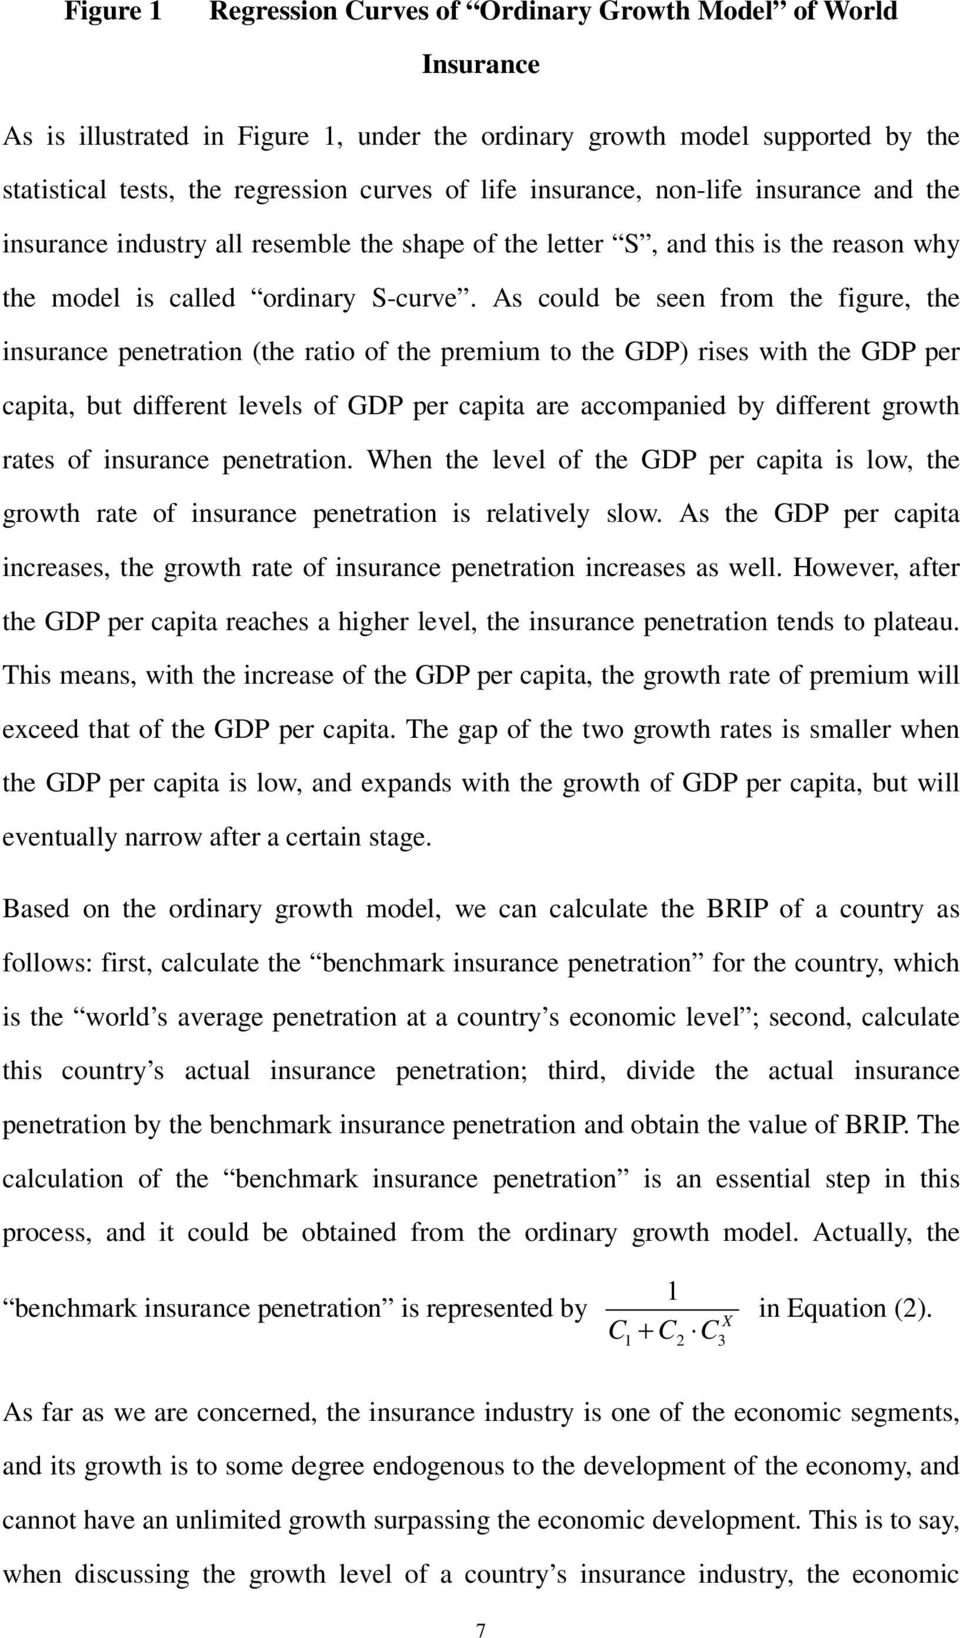 As could be seen from the figure, the insurance penetration (the ratio of the premium to the GDP) rises with the GDP per capita, but different levels of GDP per capita are accompanied by different